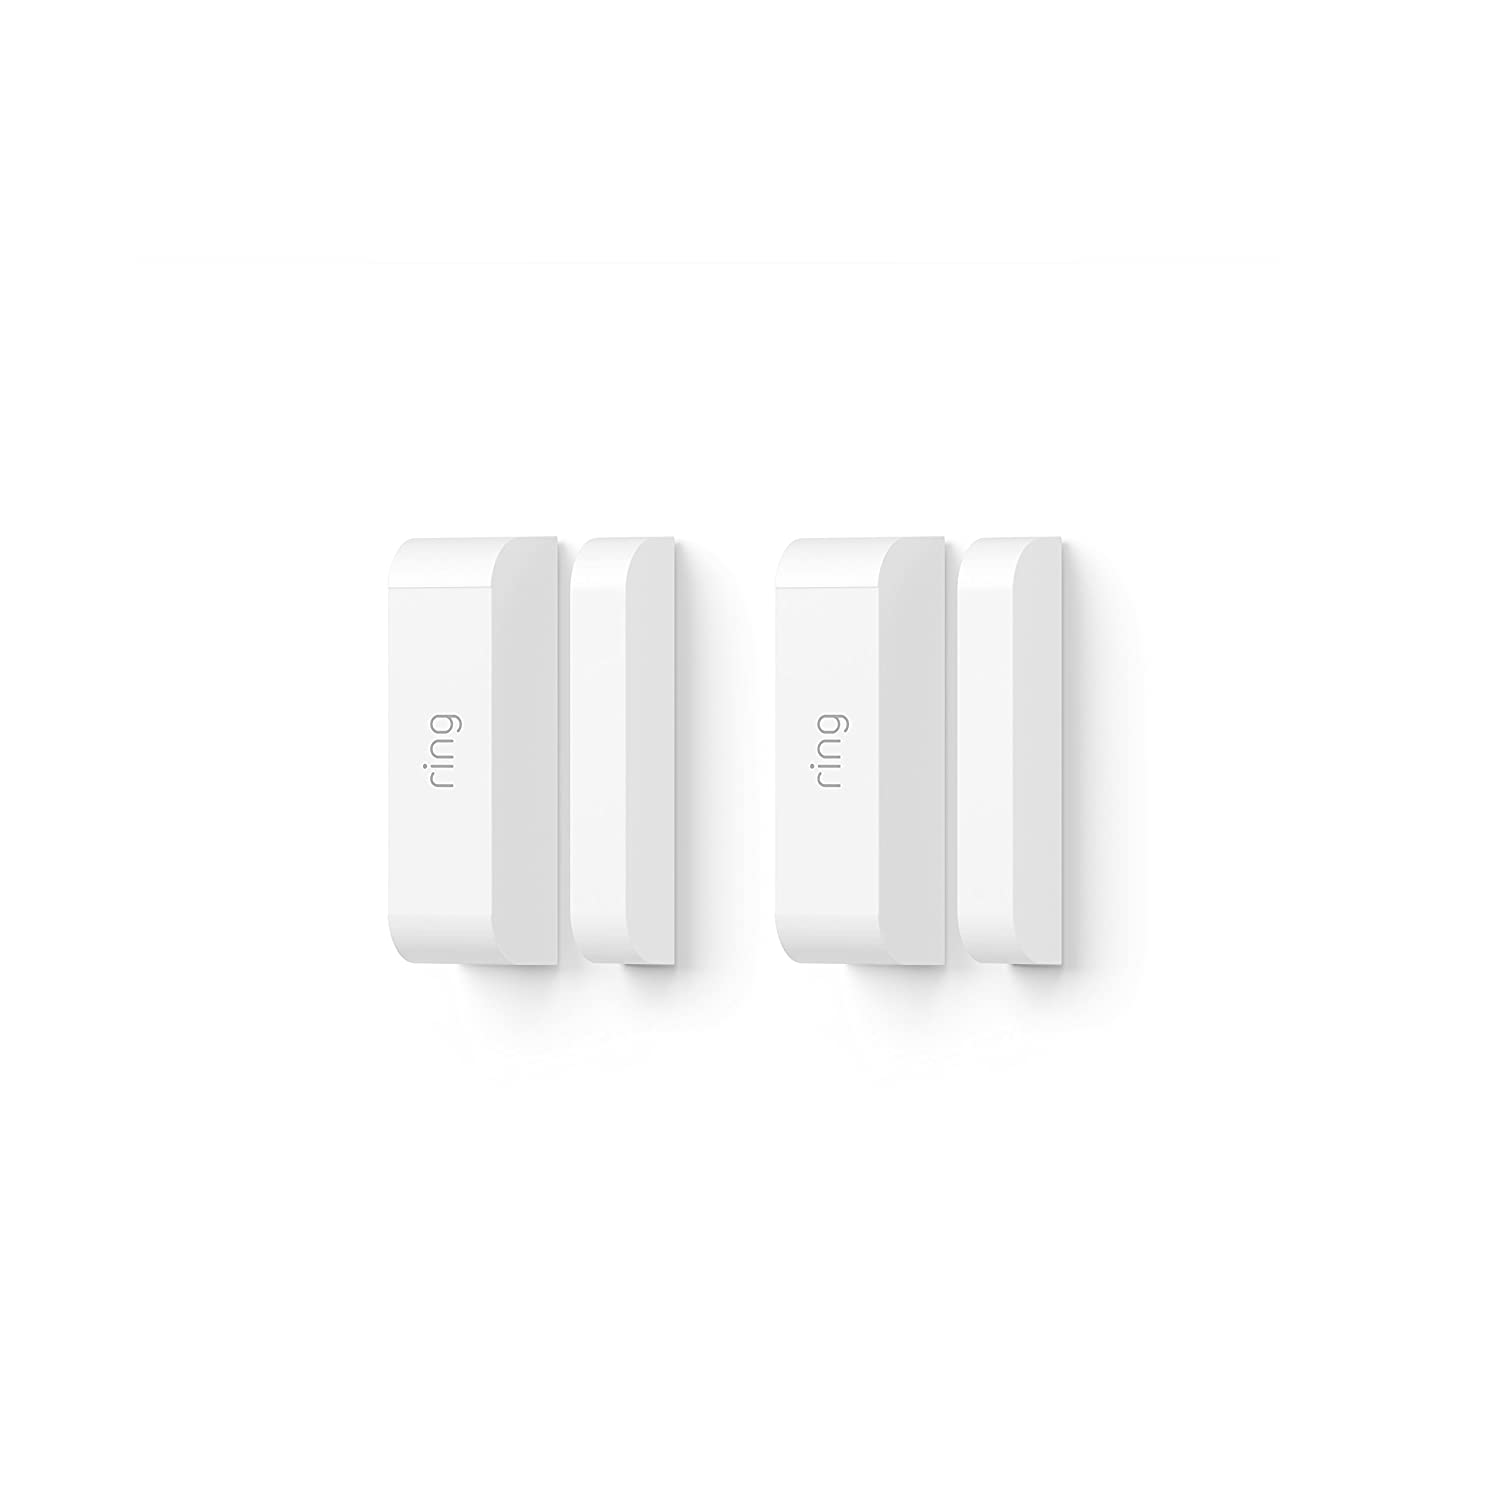 Ring Contact Sensor 2 Pack Alarm White Amazon Devices Security Contacts Wiring Series